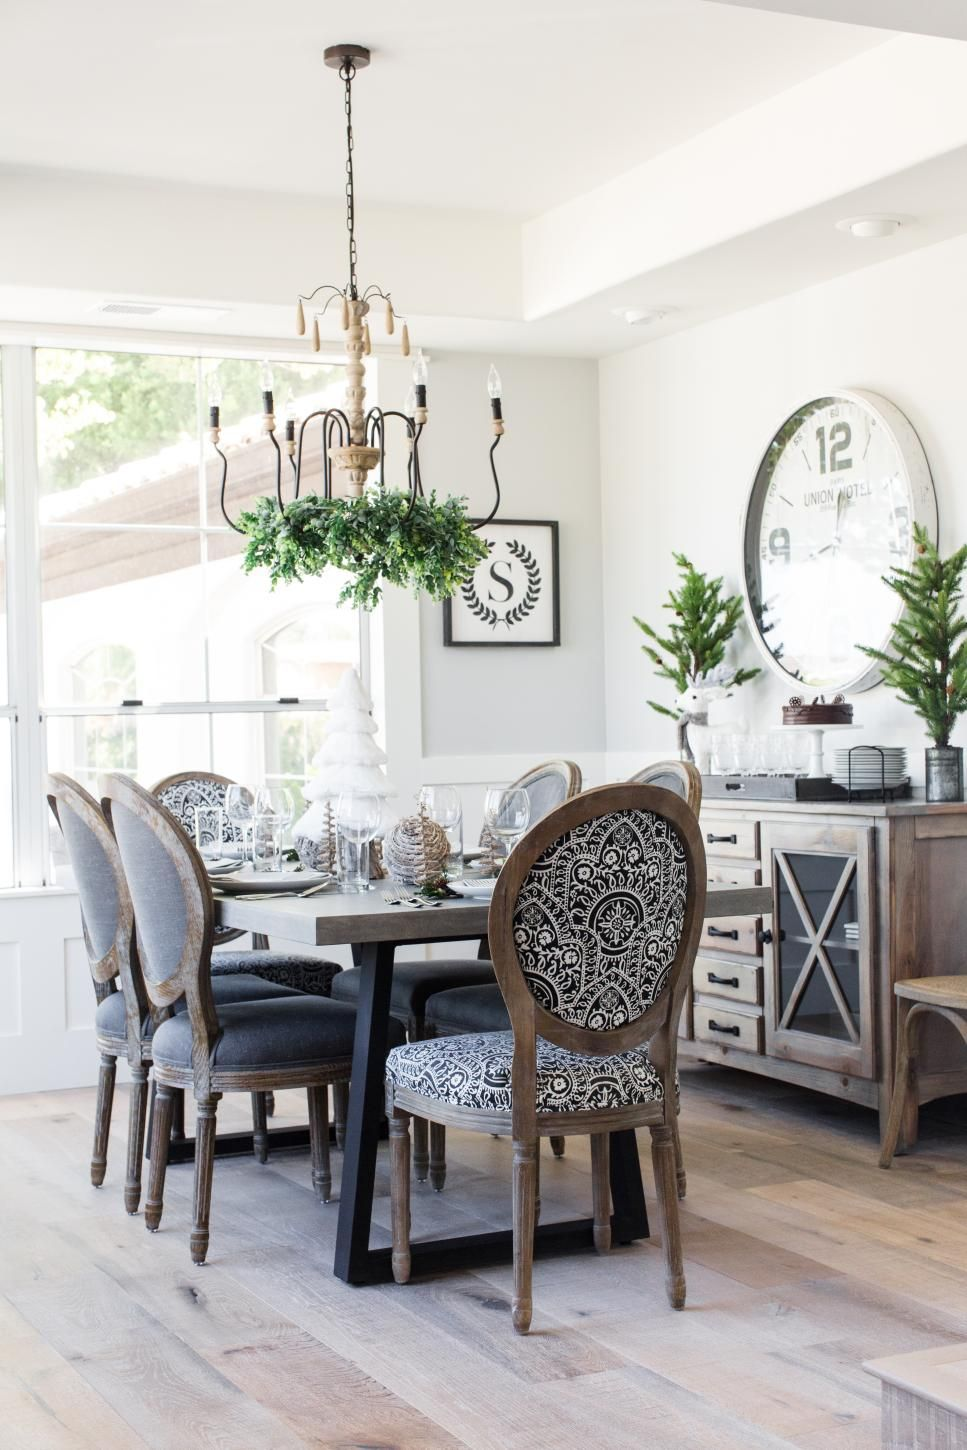 Make Your Light Fixture The Centerpiece Of Your Gathering Spot With These Elegant French Country Dining Room Farmhouse Dining Rooms Decor Country Dining Rooms